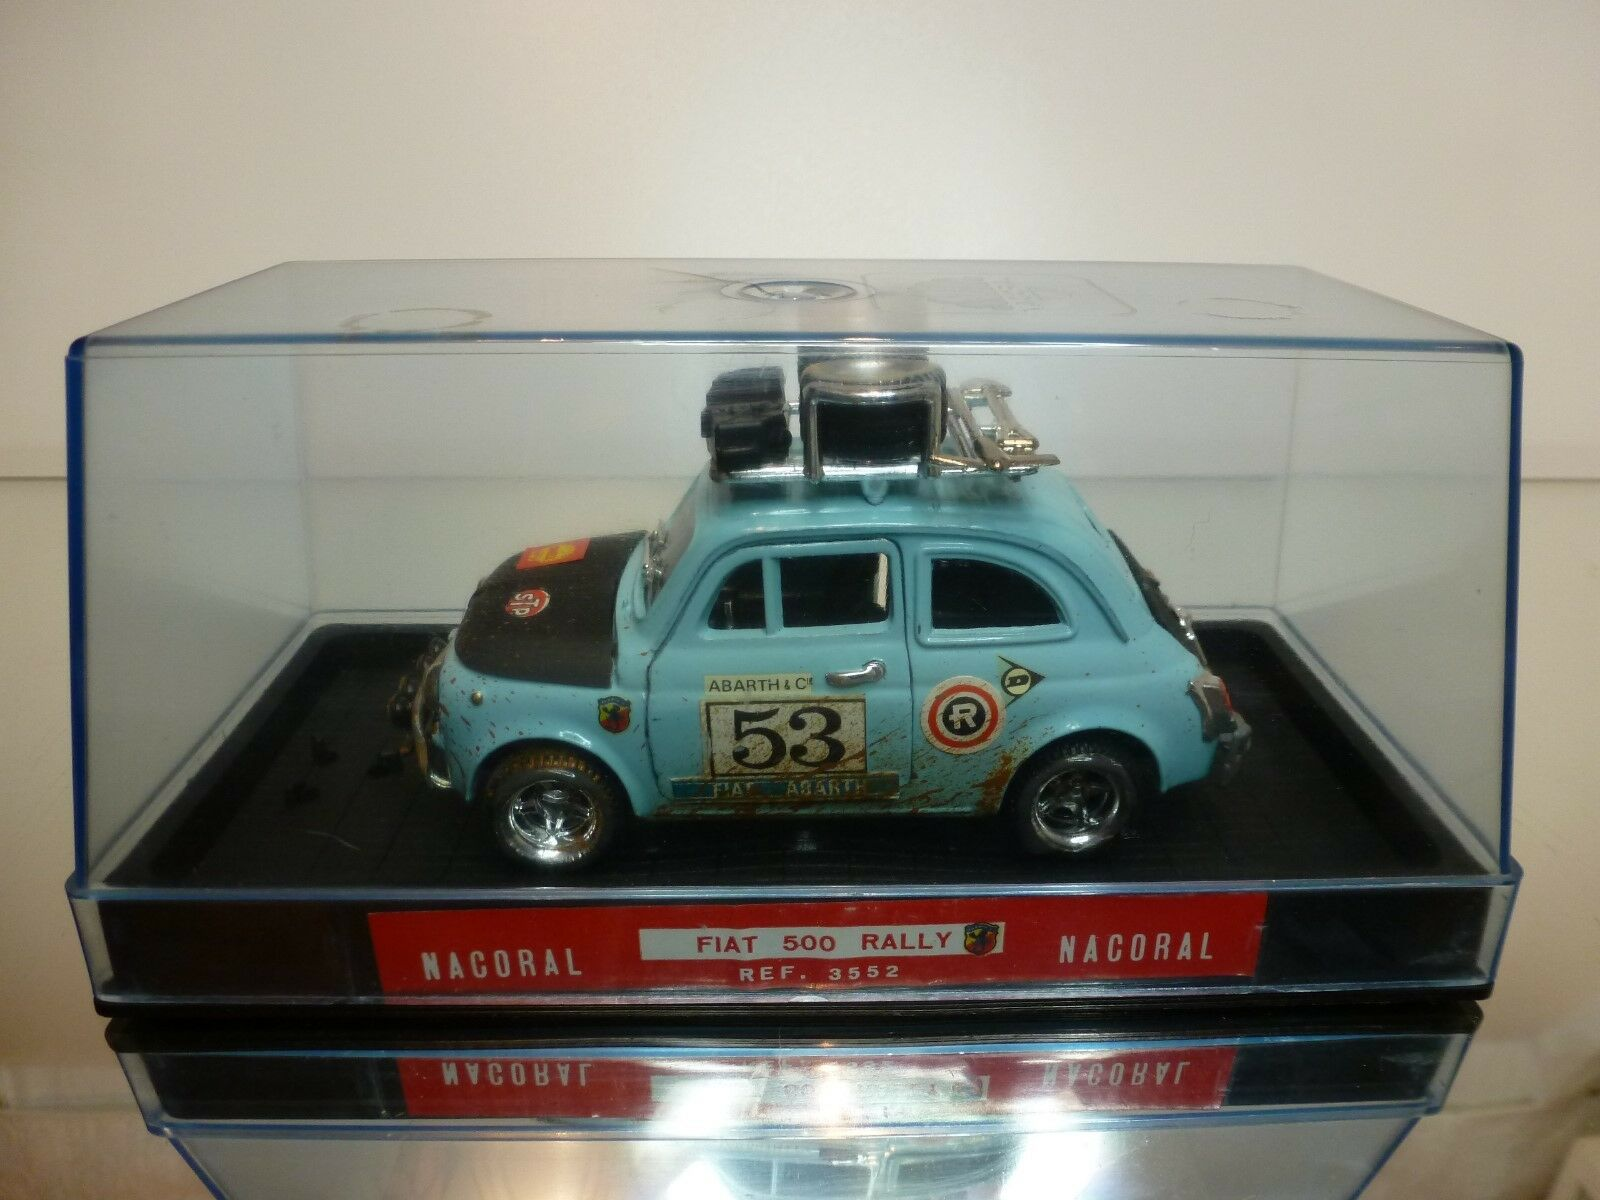 NACORAL 1 25 - FIAT 500 RALLY NO= 3552 - EXTREMELY RARE - EXCELLENT IN SHOW CASE